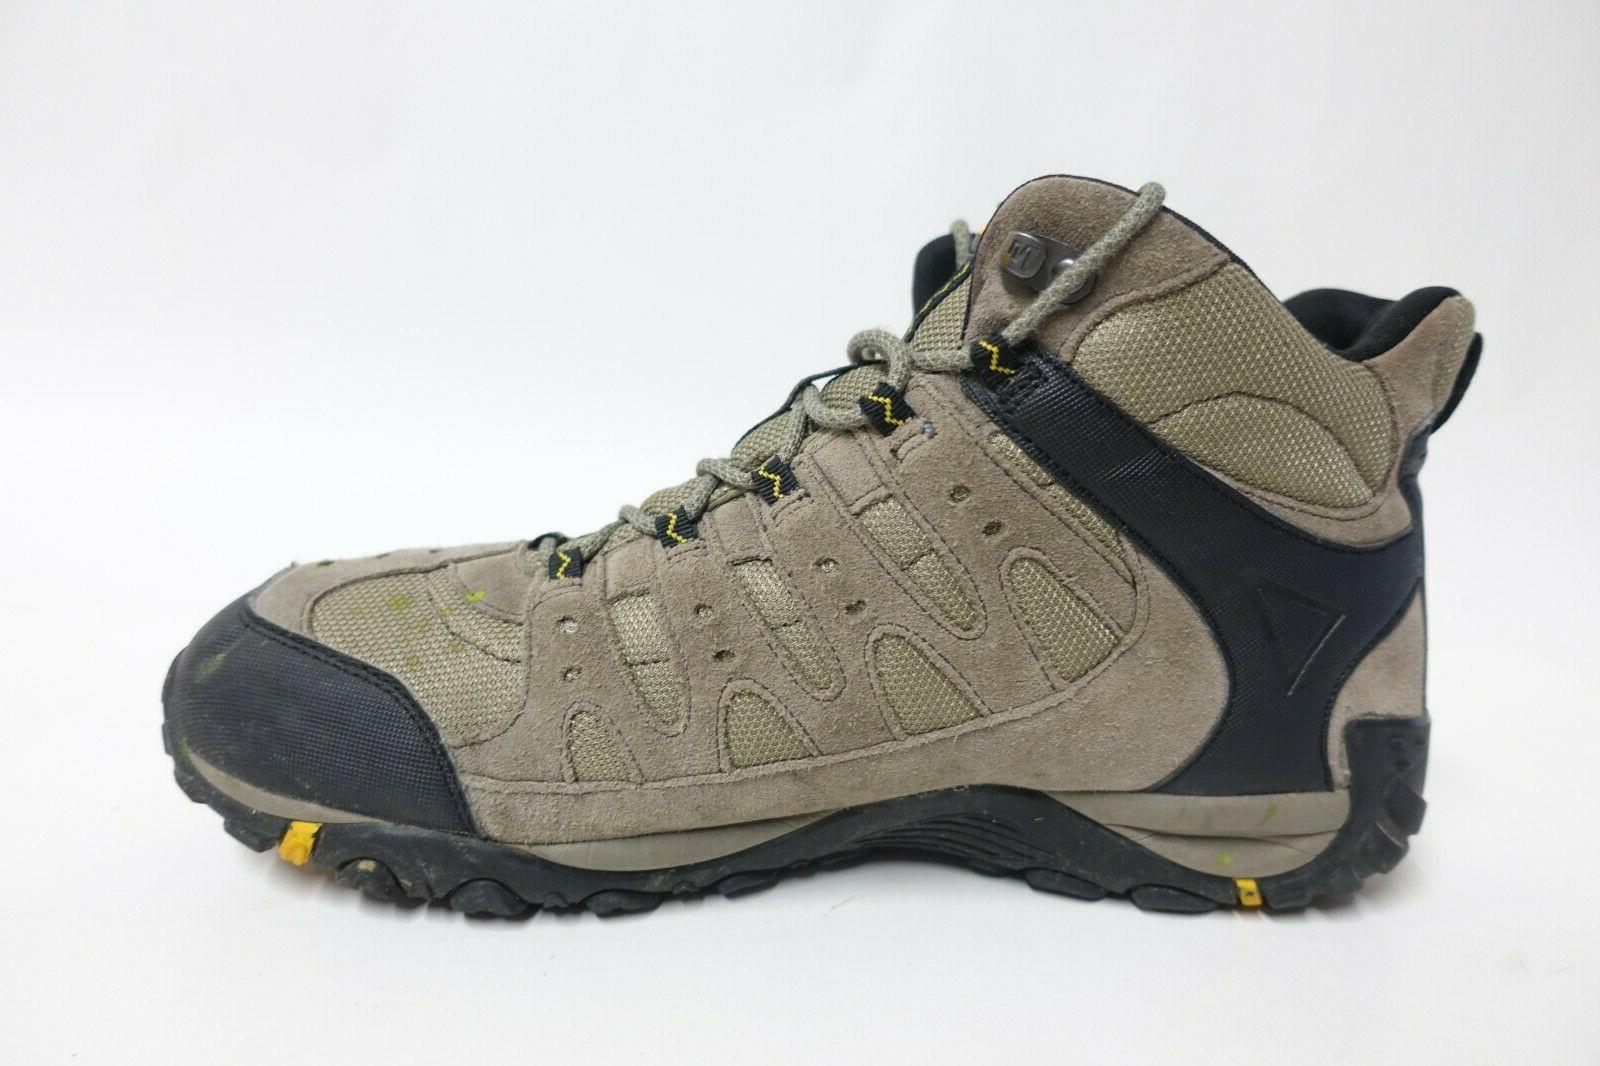 MERRELL Leather 13 M Hiking Waterproof Boots